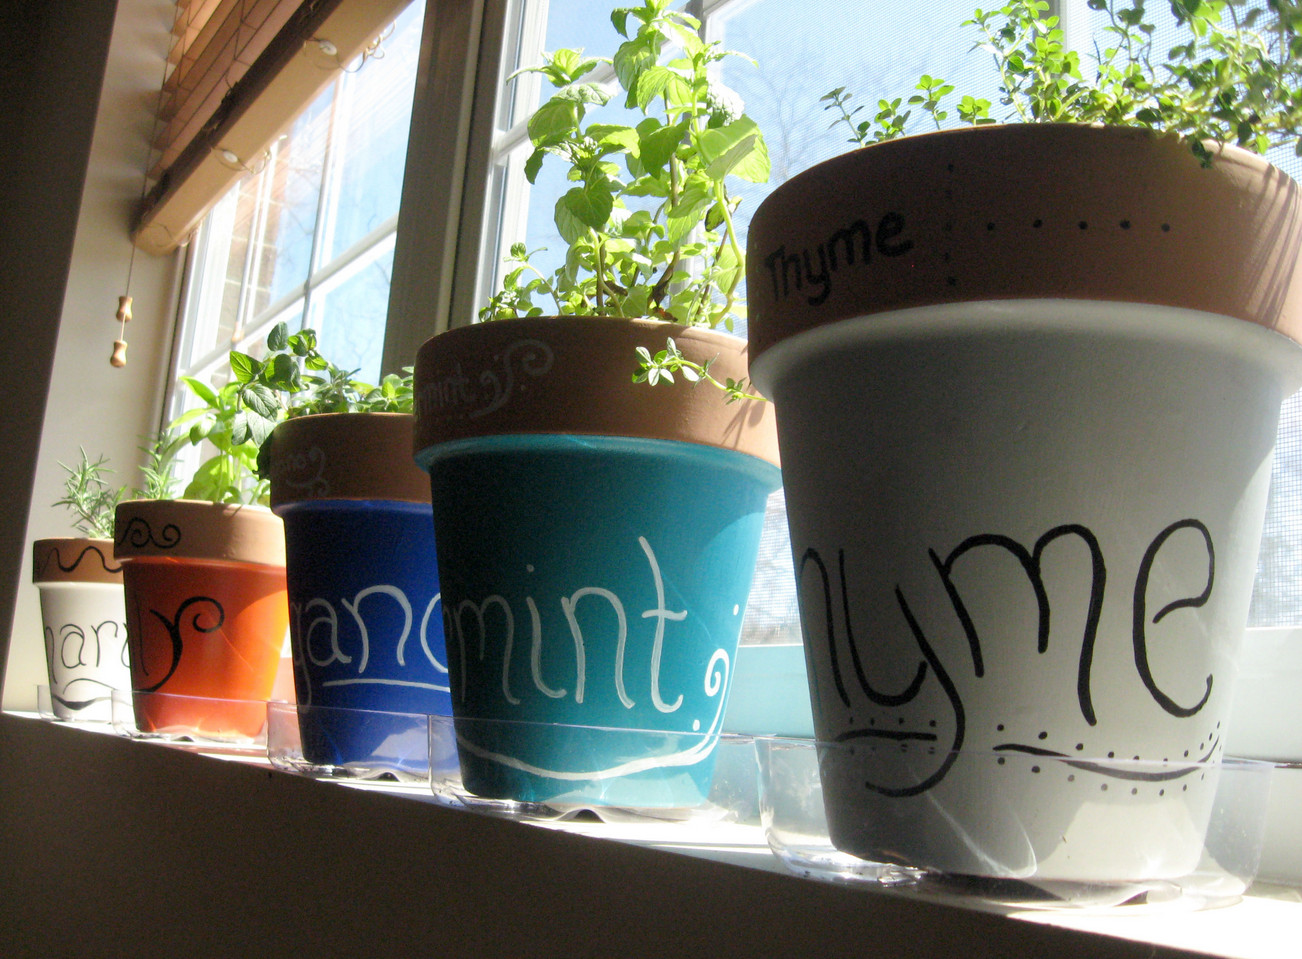 ceramic window sill planter